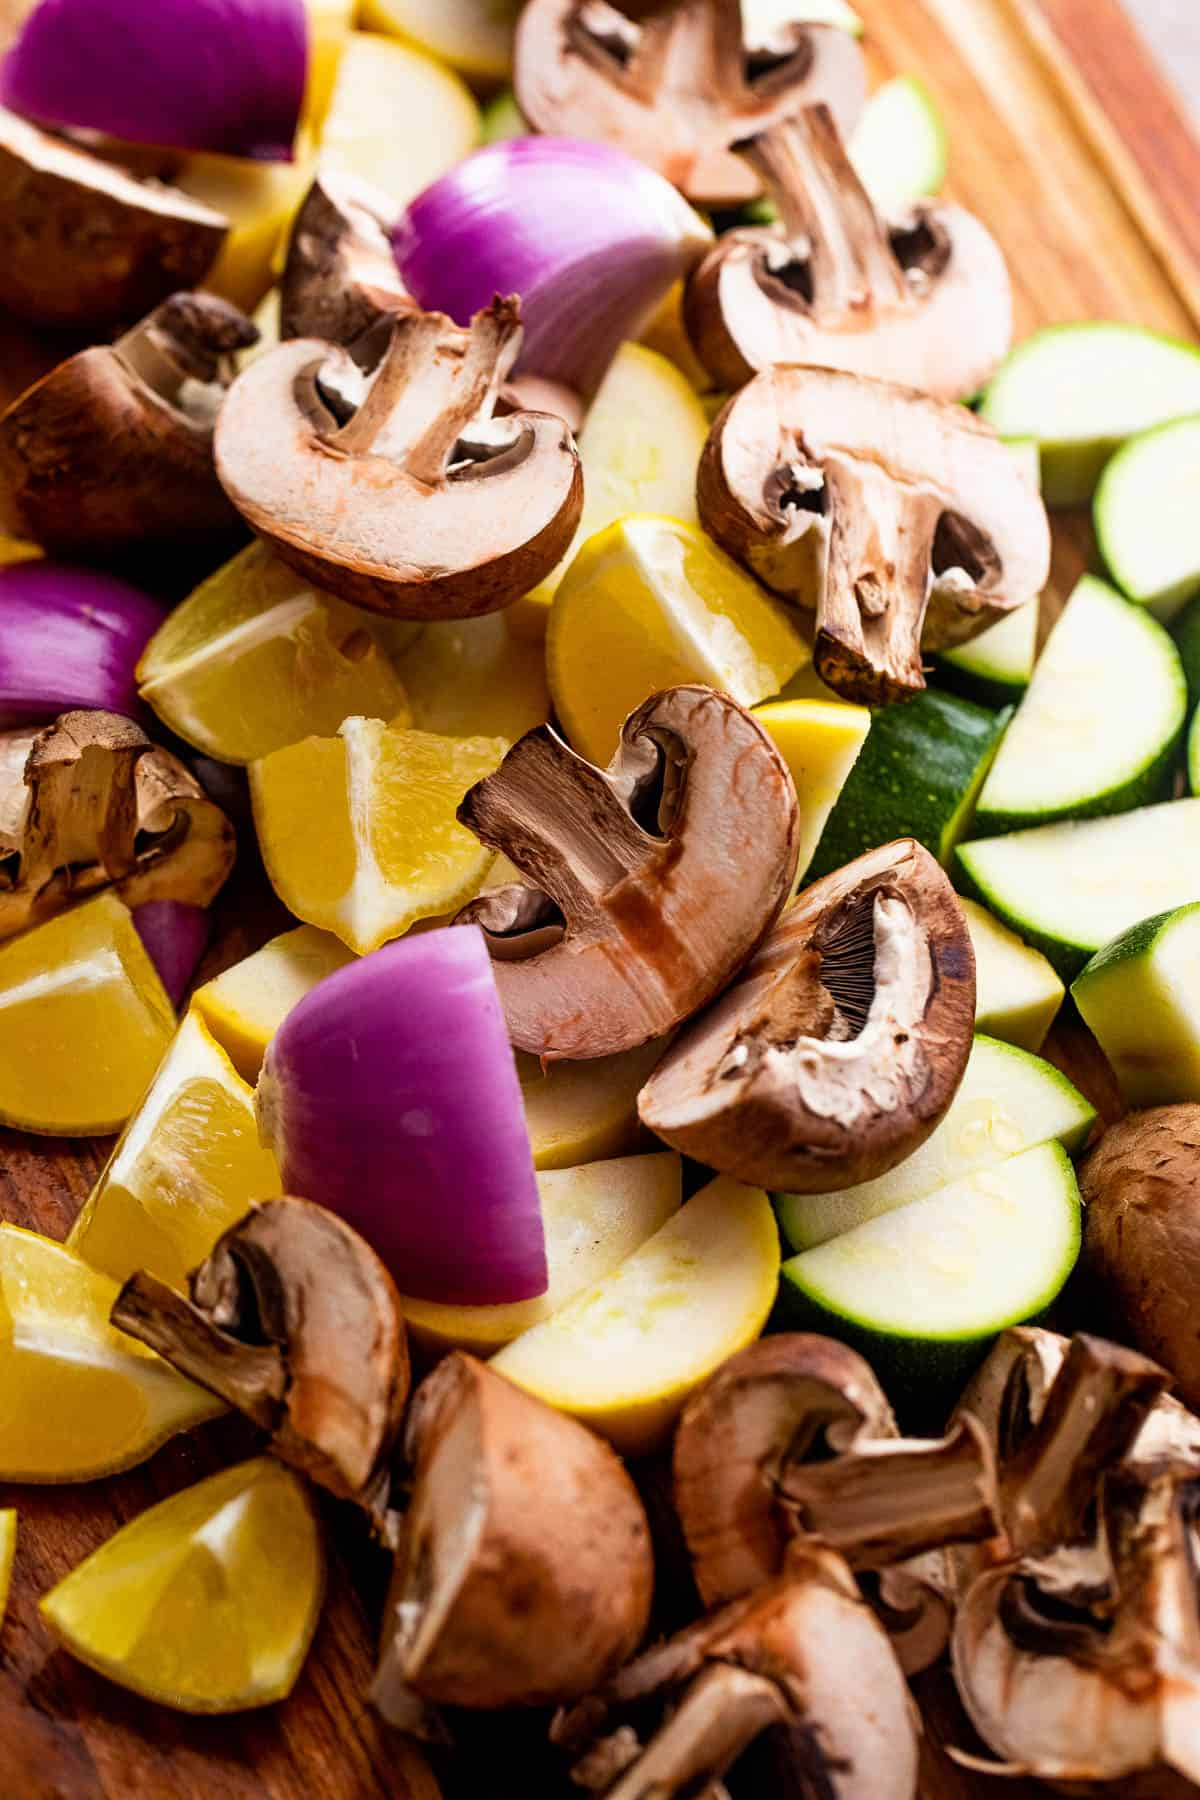 a pile of chopped mushrooms, red onions, lemons, and squash on a wooden board